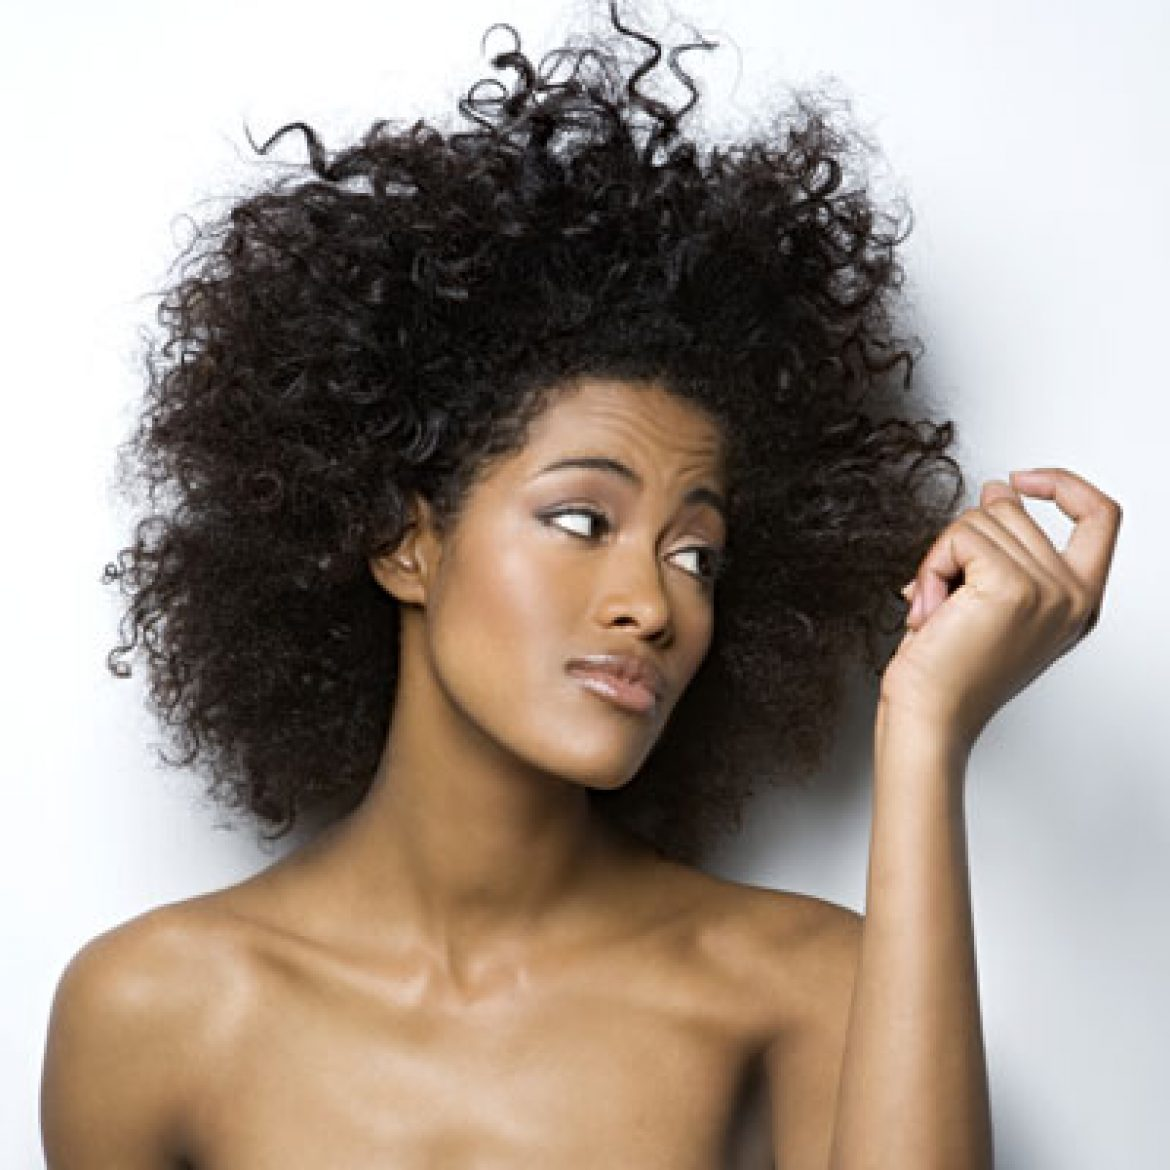 Going Natural – Do your research!